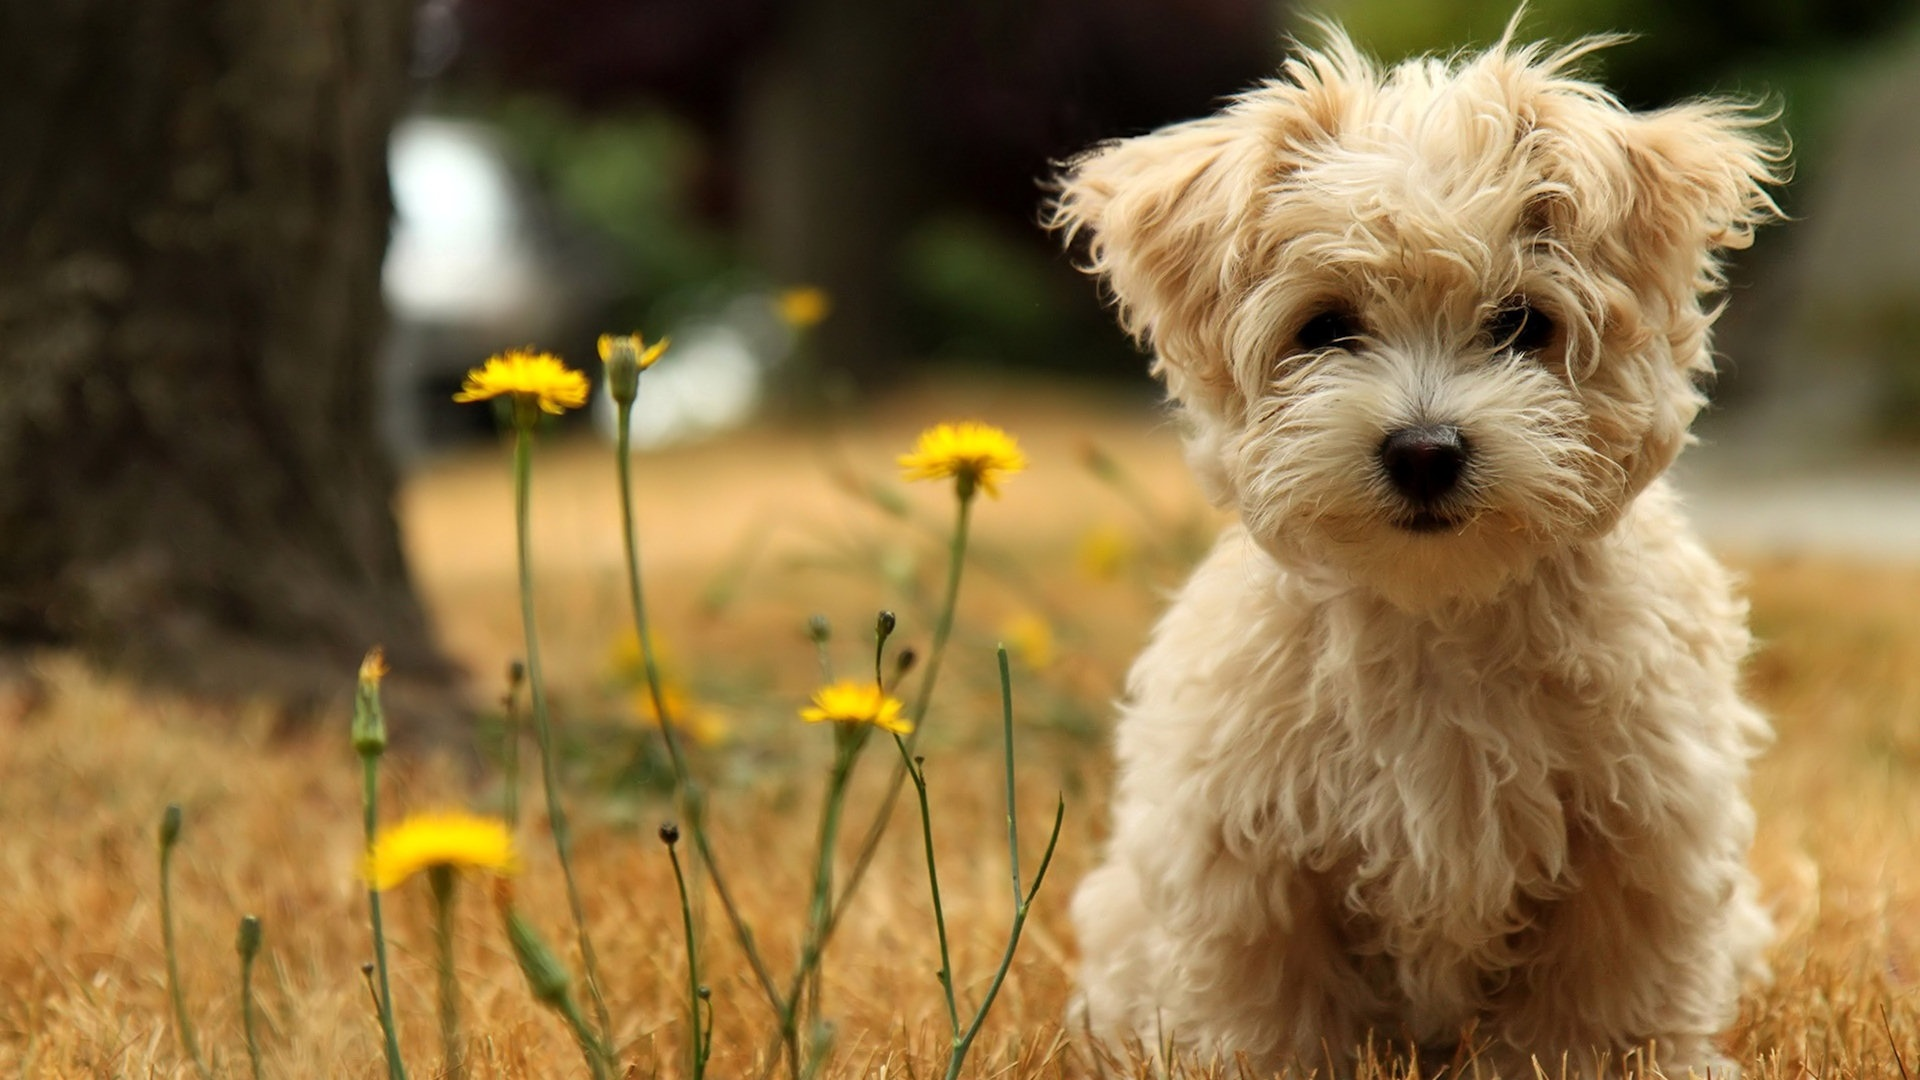 puppy dog wallpaper - photo #6